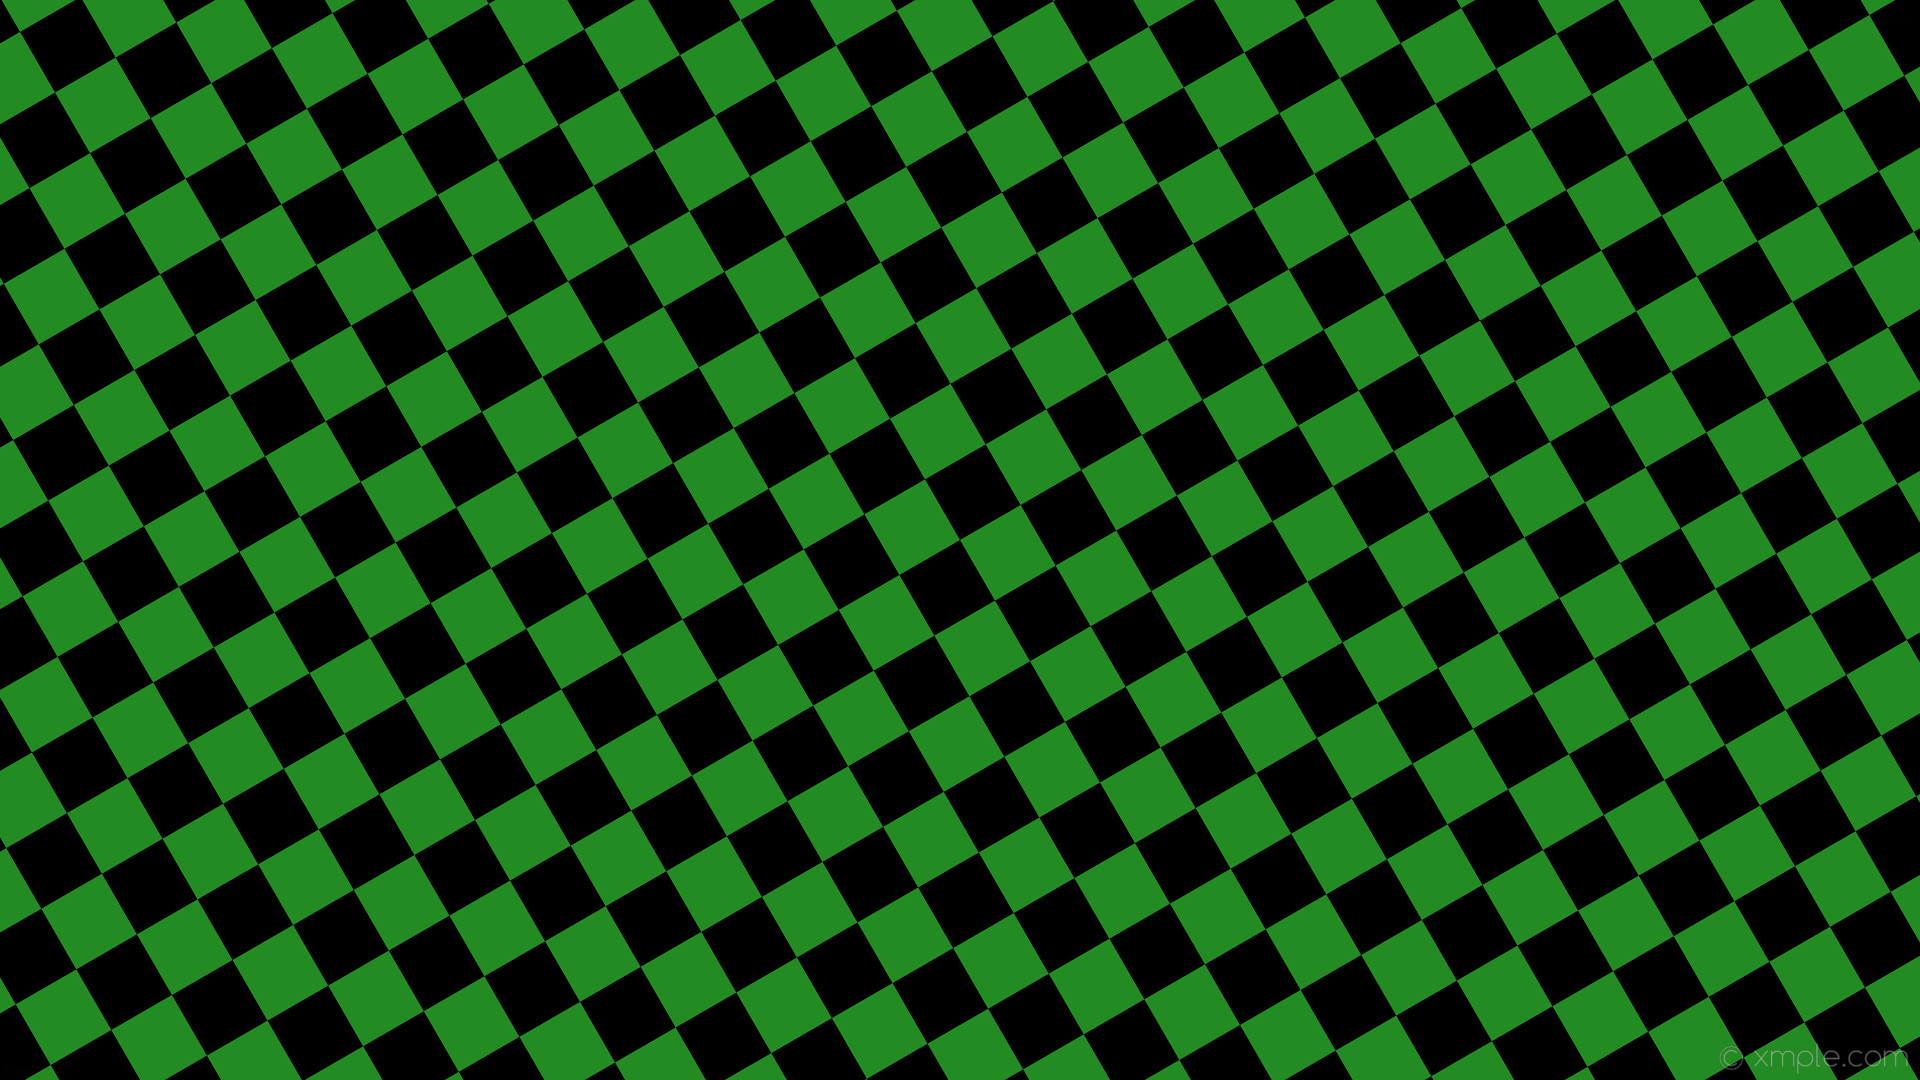 Res: 1920x1080, wallpaper checkered green squares black forest green #228b22 #000000  diagonal 30° 70px